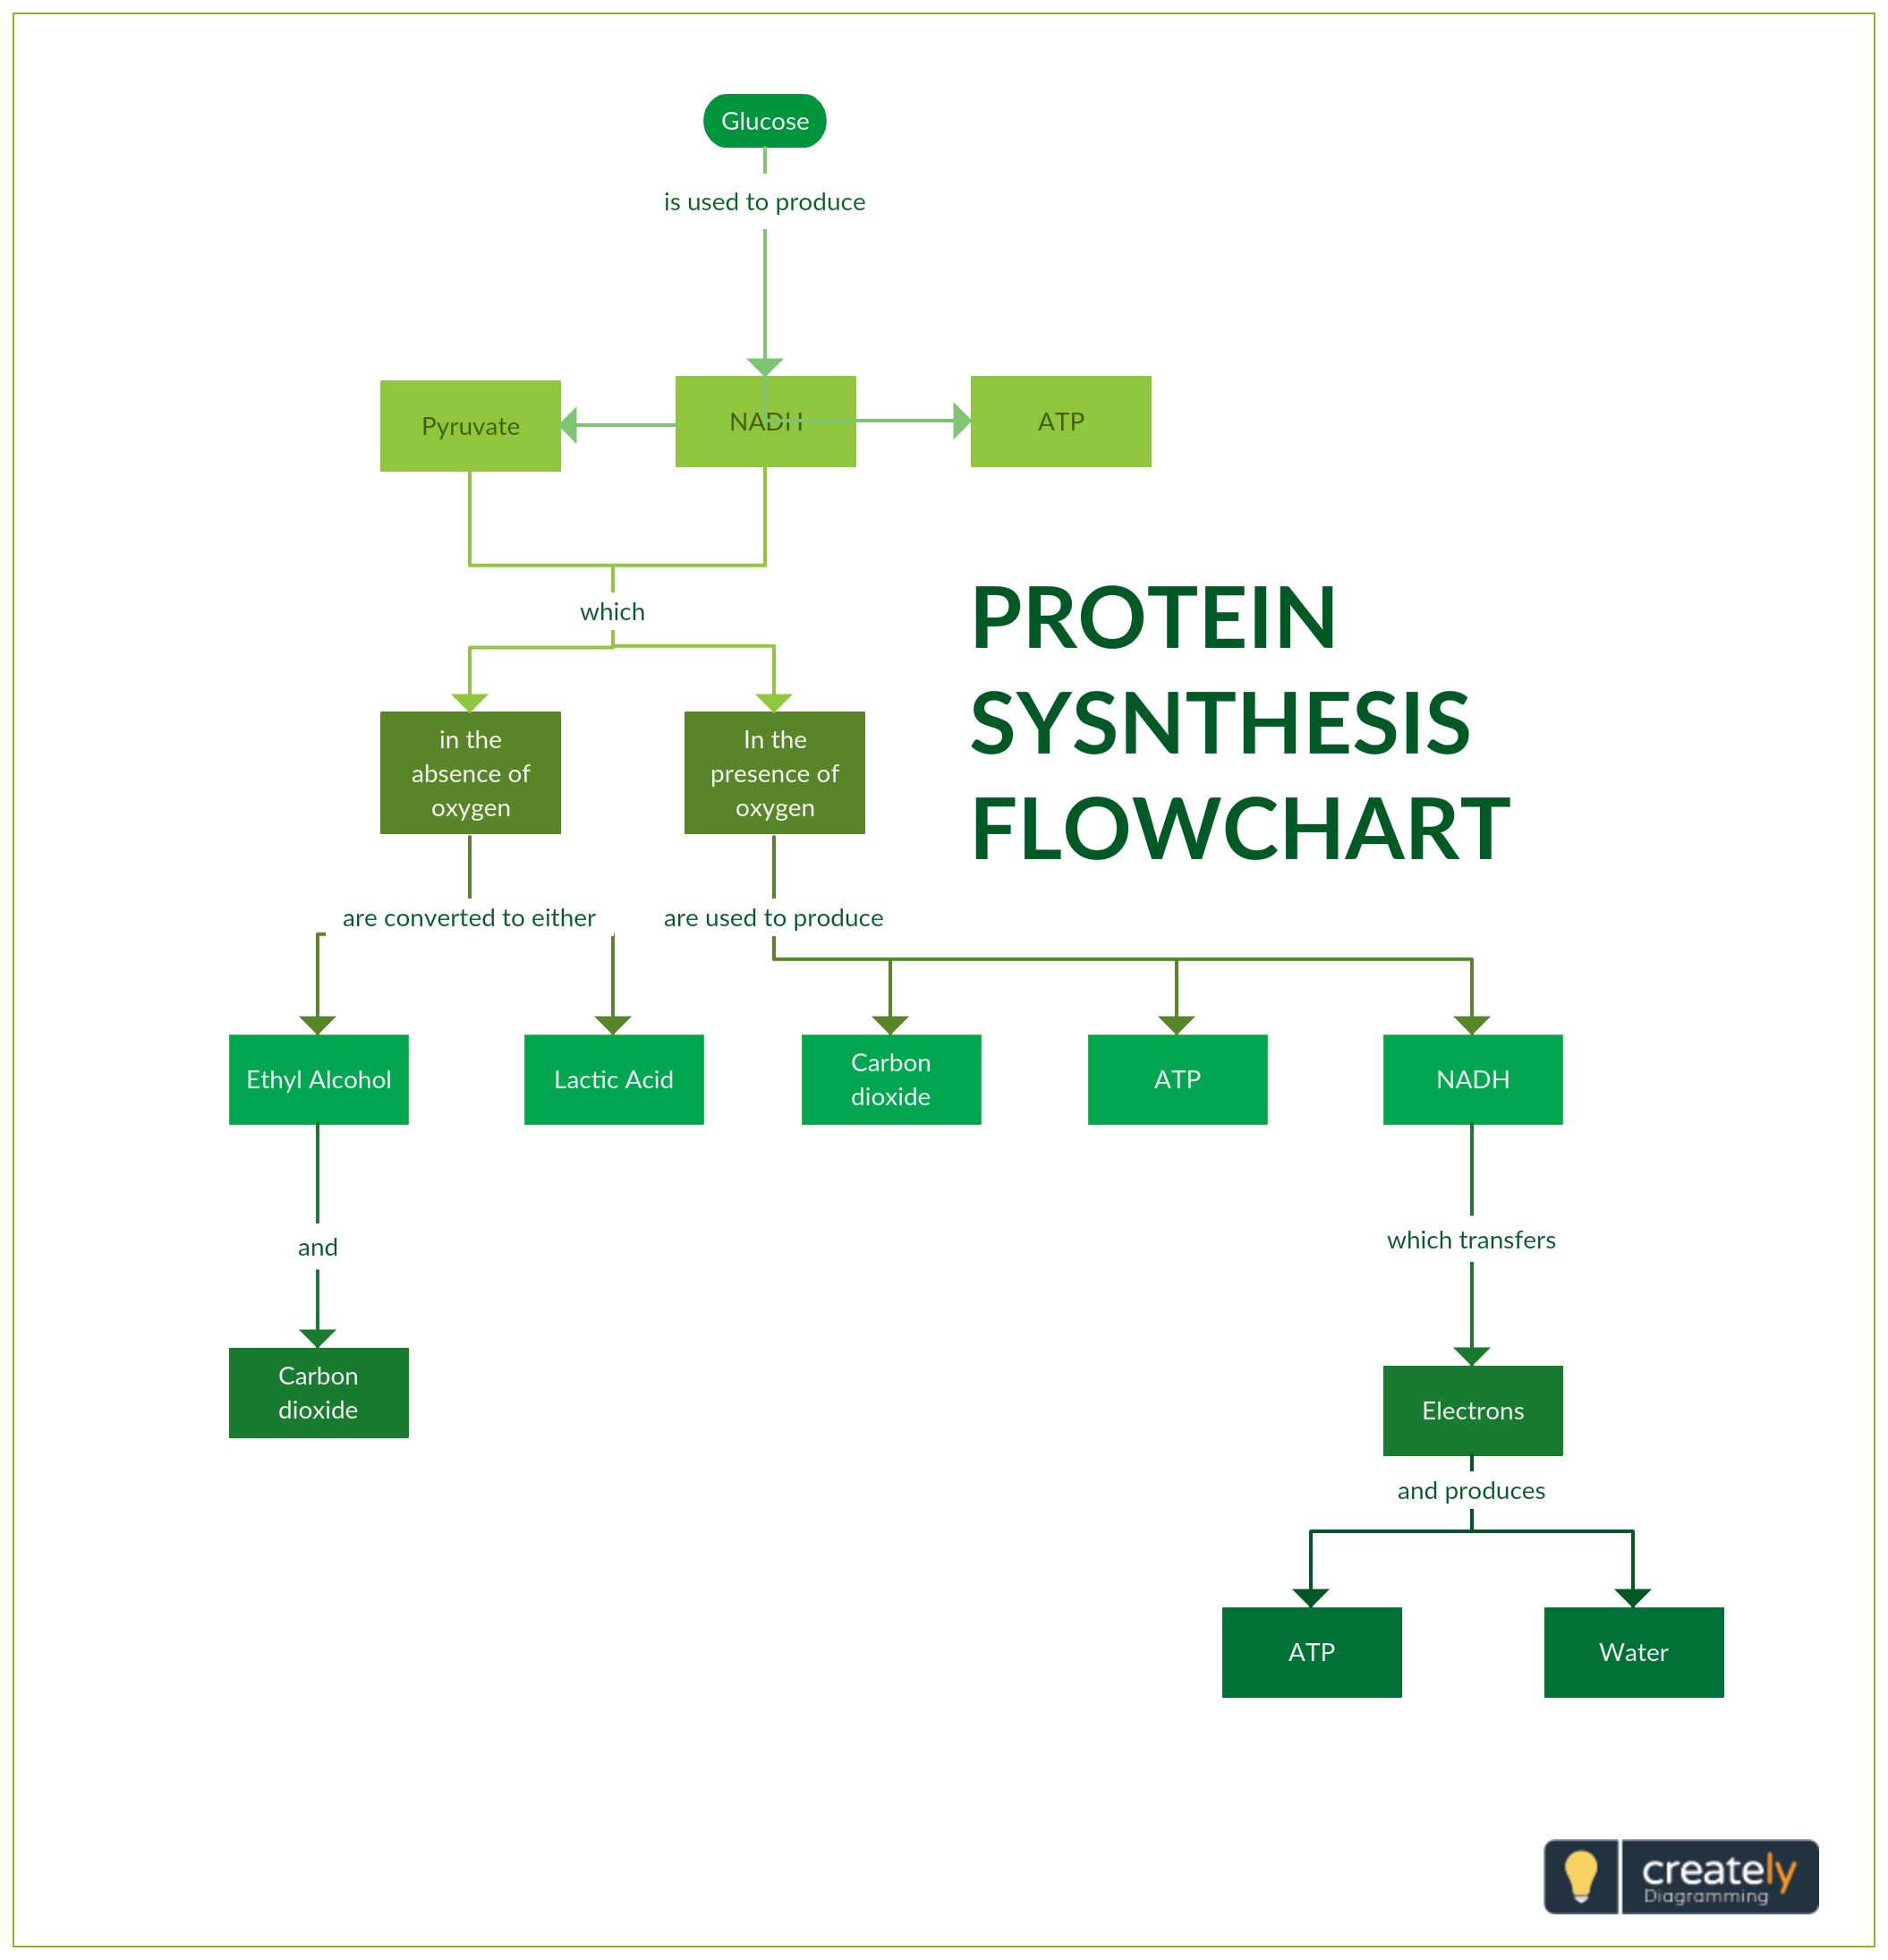 small resolution of protein synthesis flowchart protein synthesis flow chart shows the process of one of the most complicated biosynthesis mechanisms